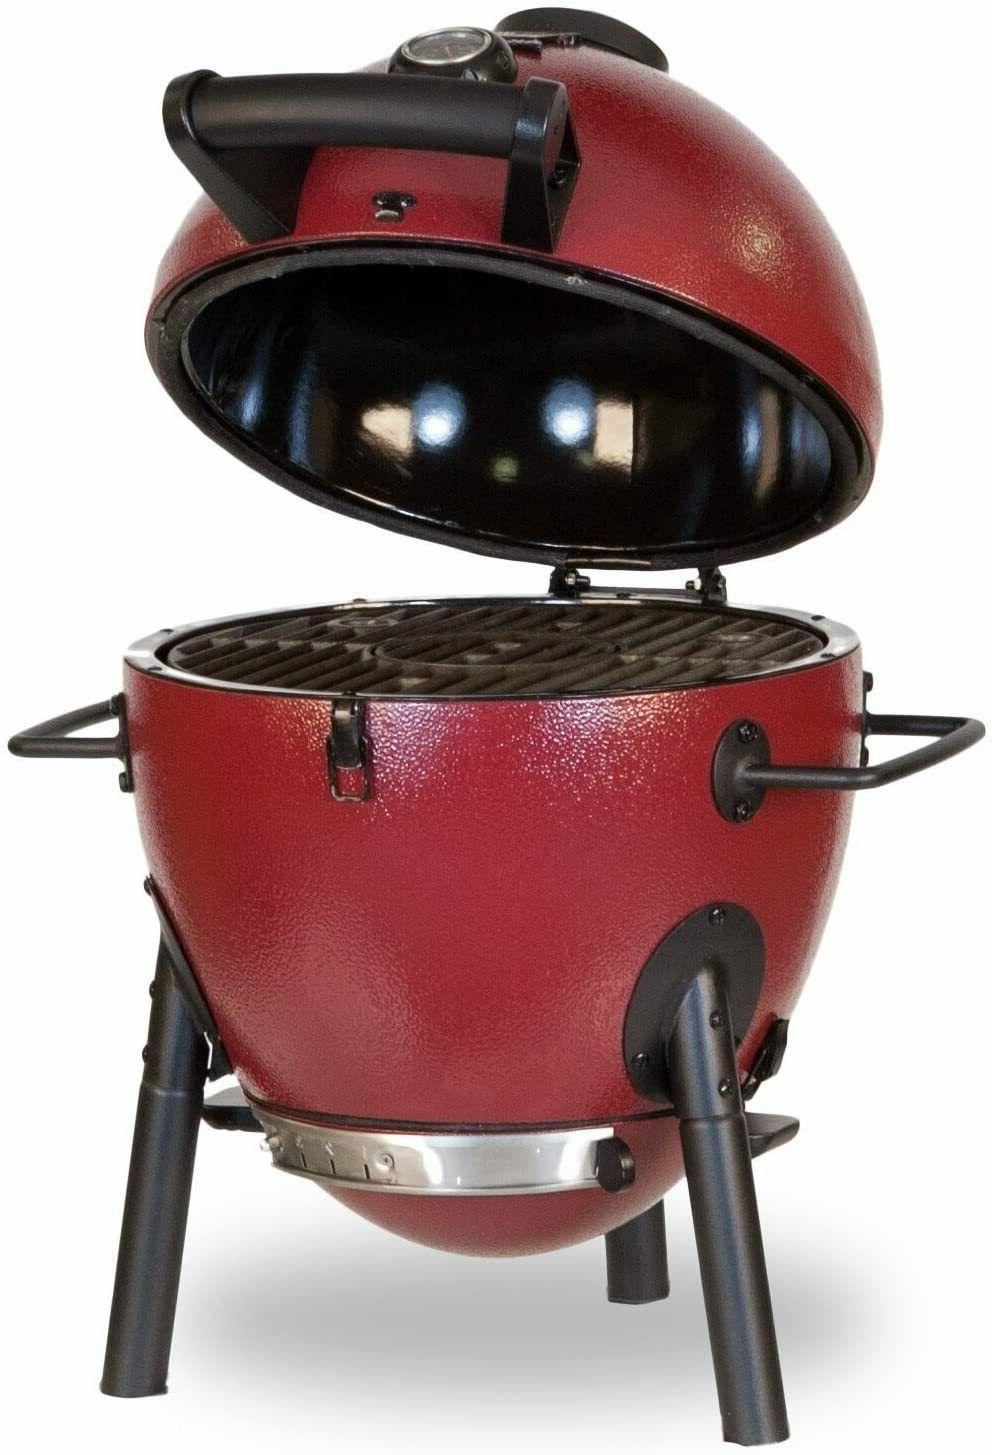 Char-Griller Red kamado smoker barbecuing